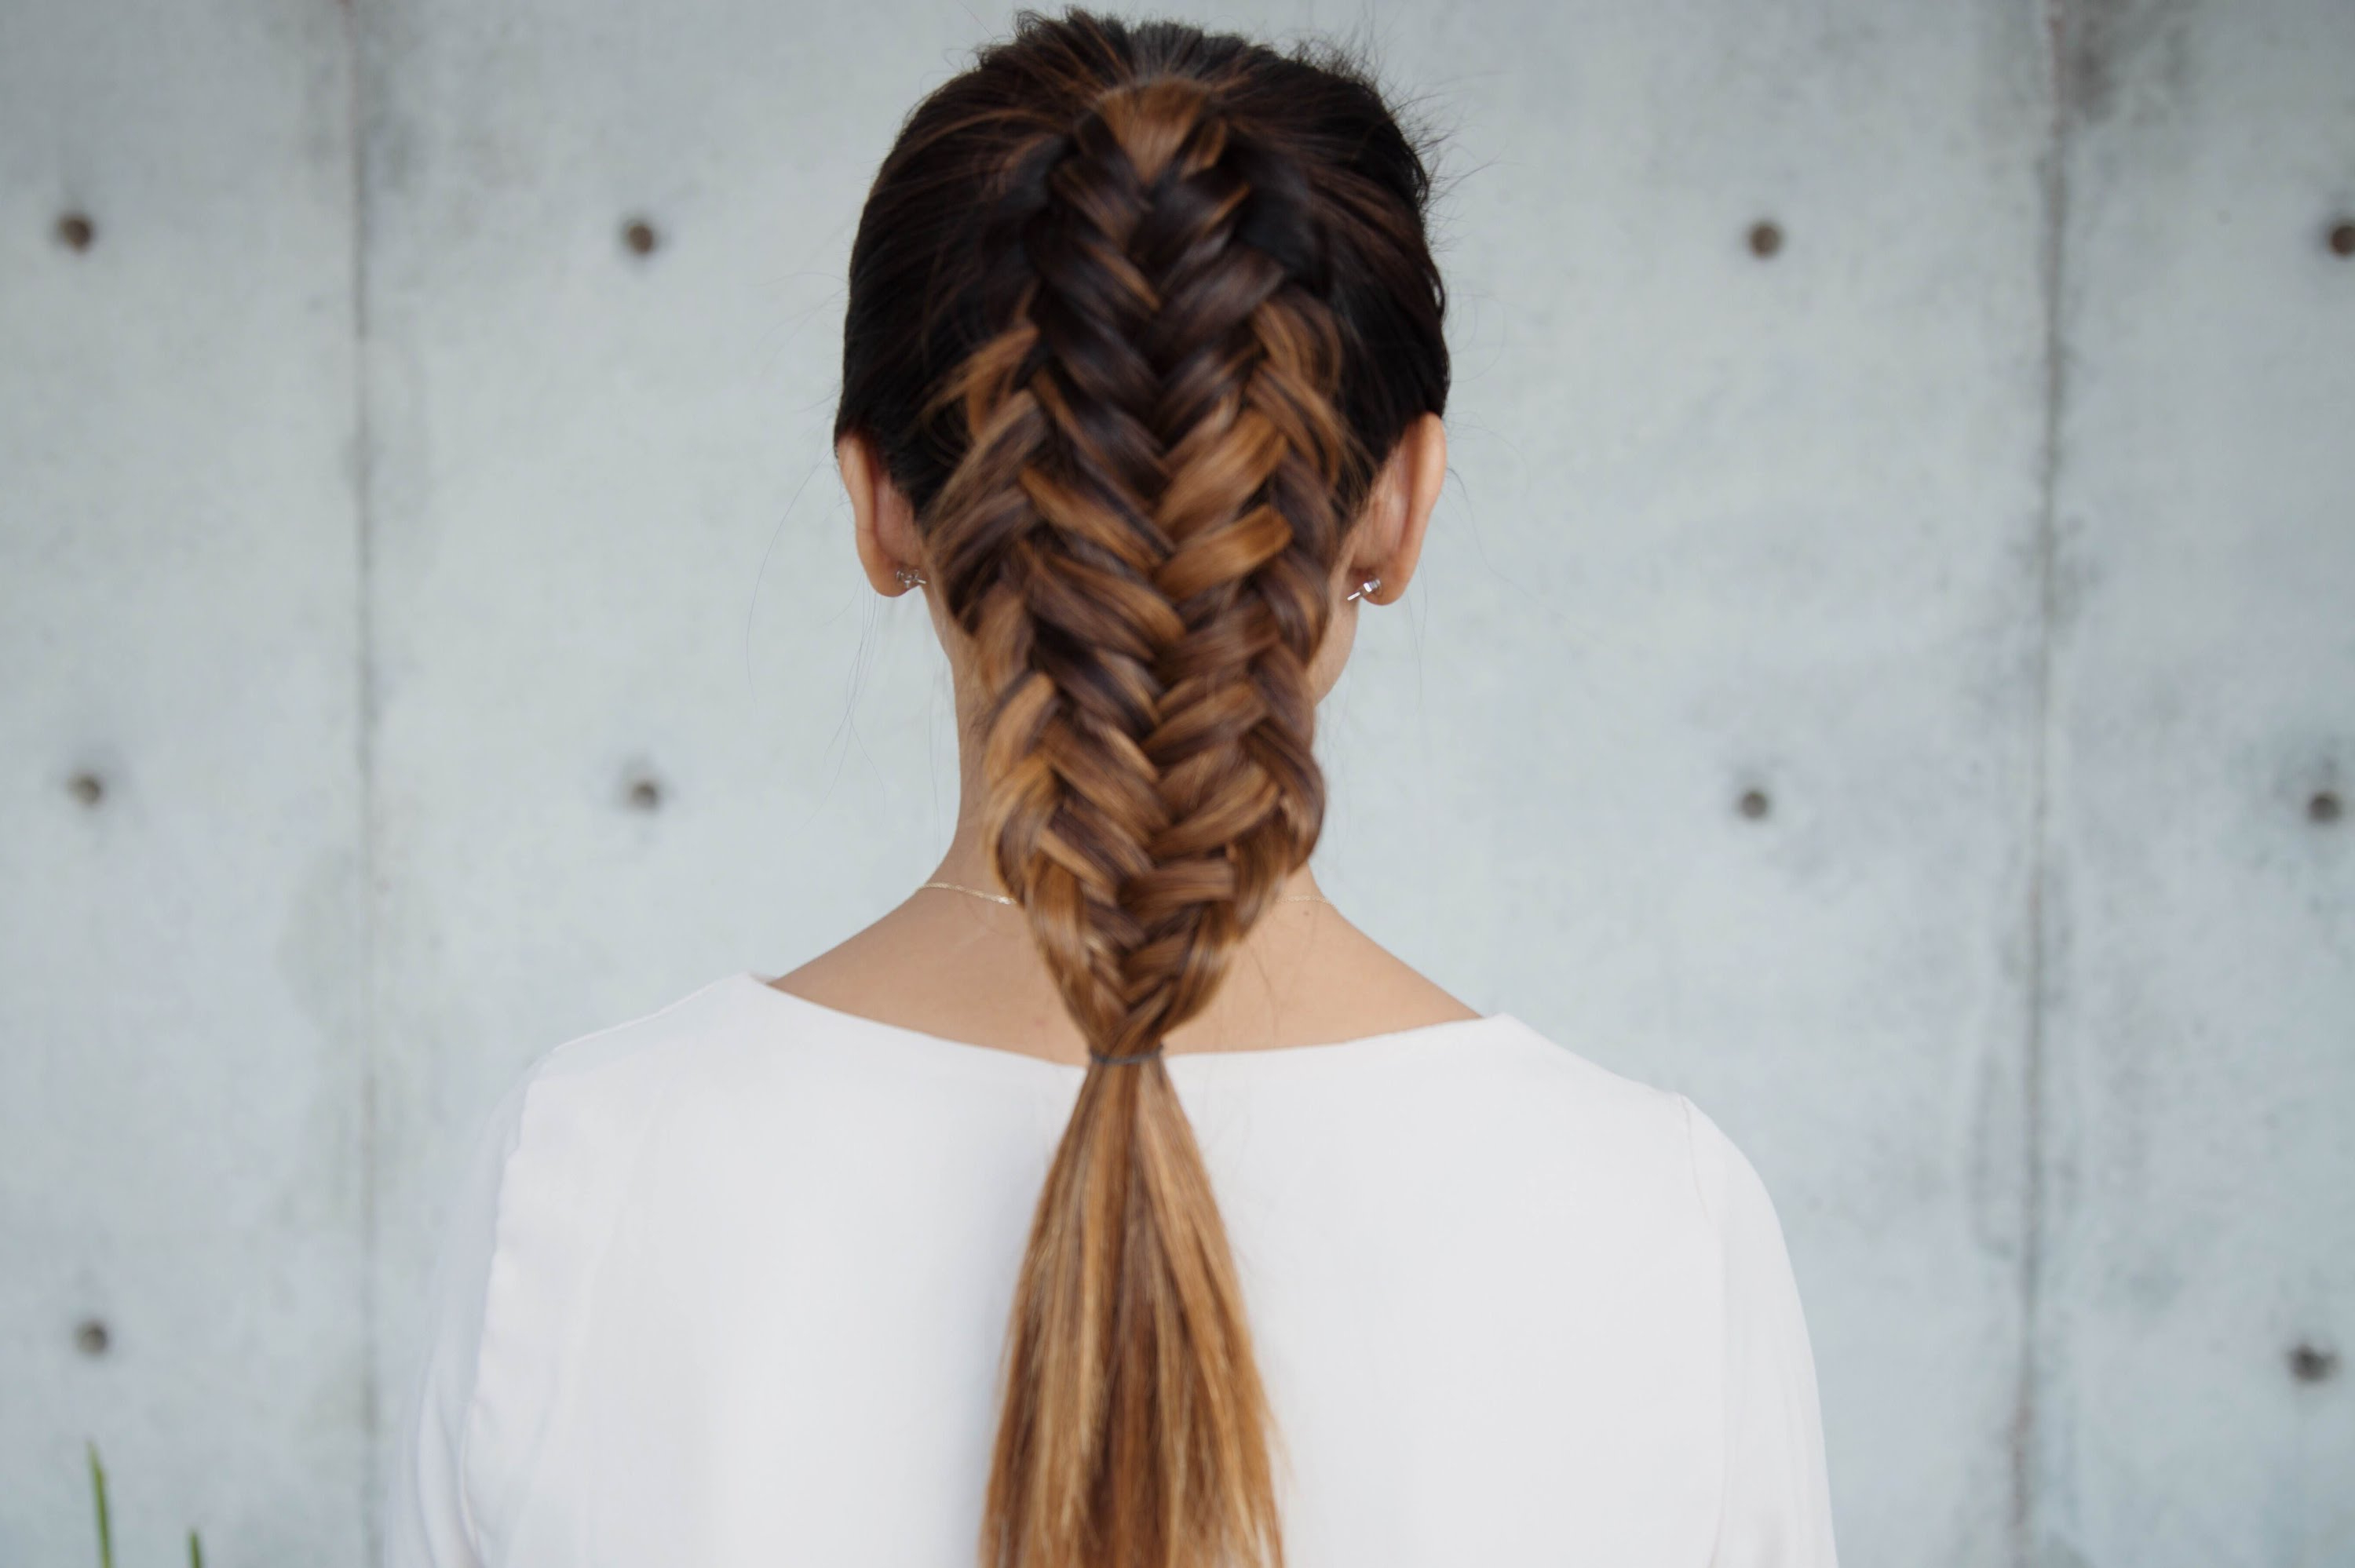 Fashionable Mermaid Braid Hairstyles With A Fishtail Pertaining To Fishtail Braid: Top 25 Beautiful Fishtail Braids (View 15 of 20)